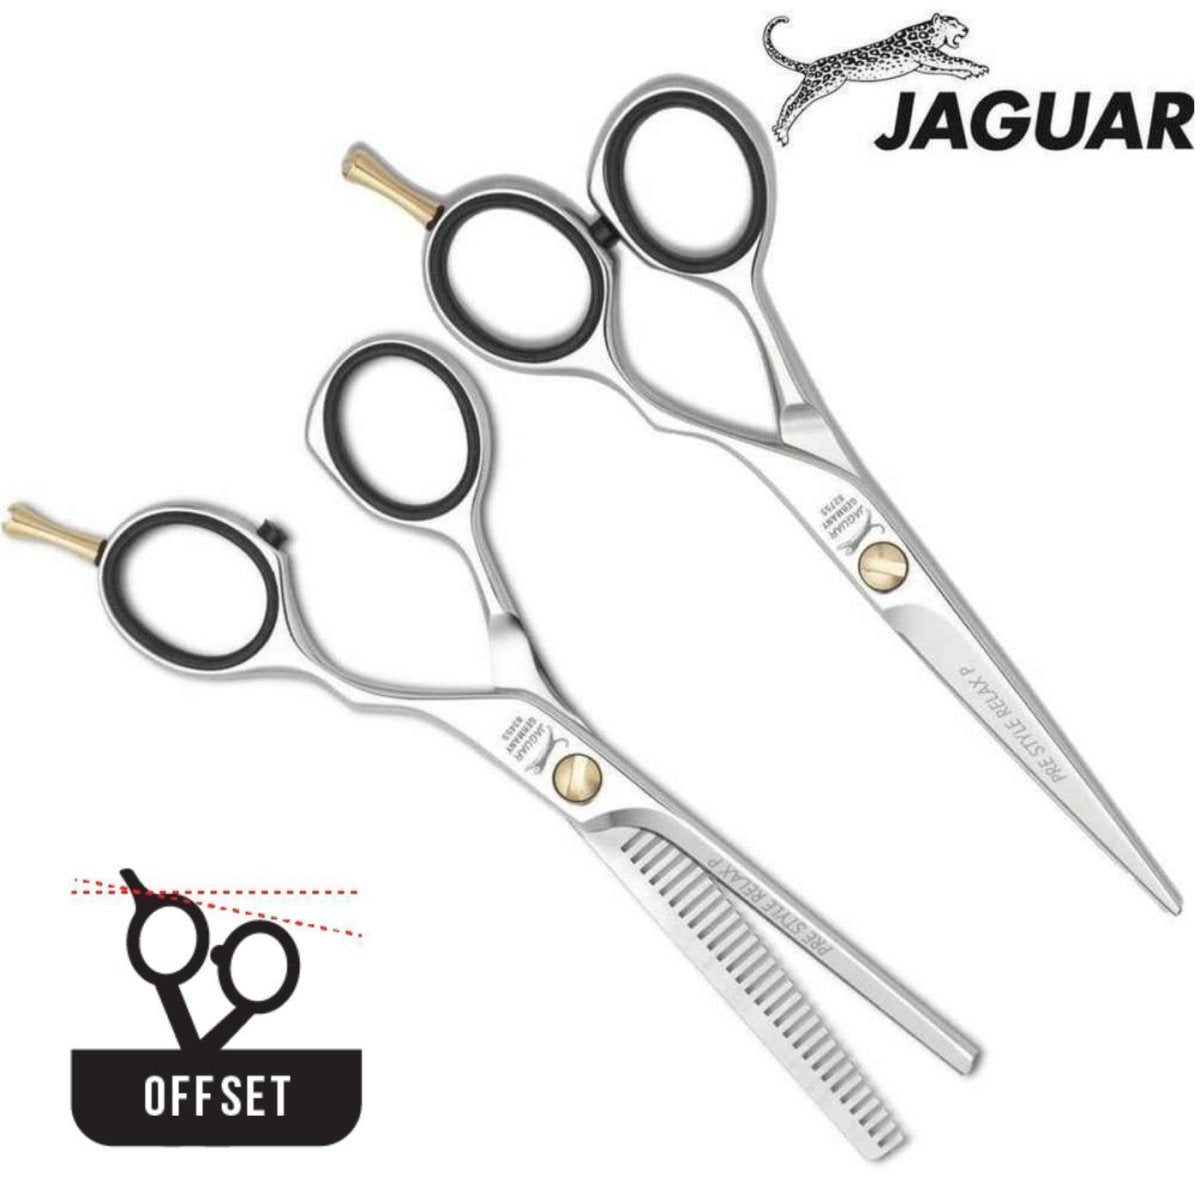 Jaguar Left Handed Scissors